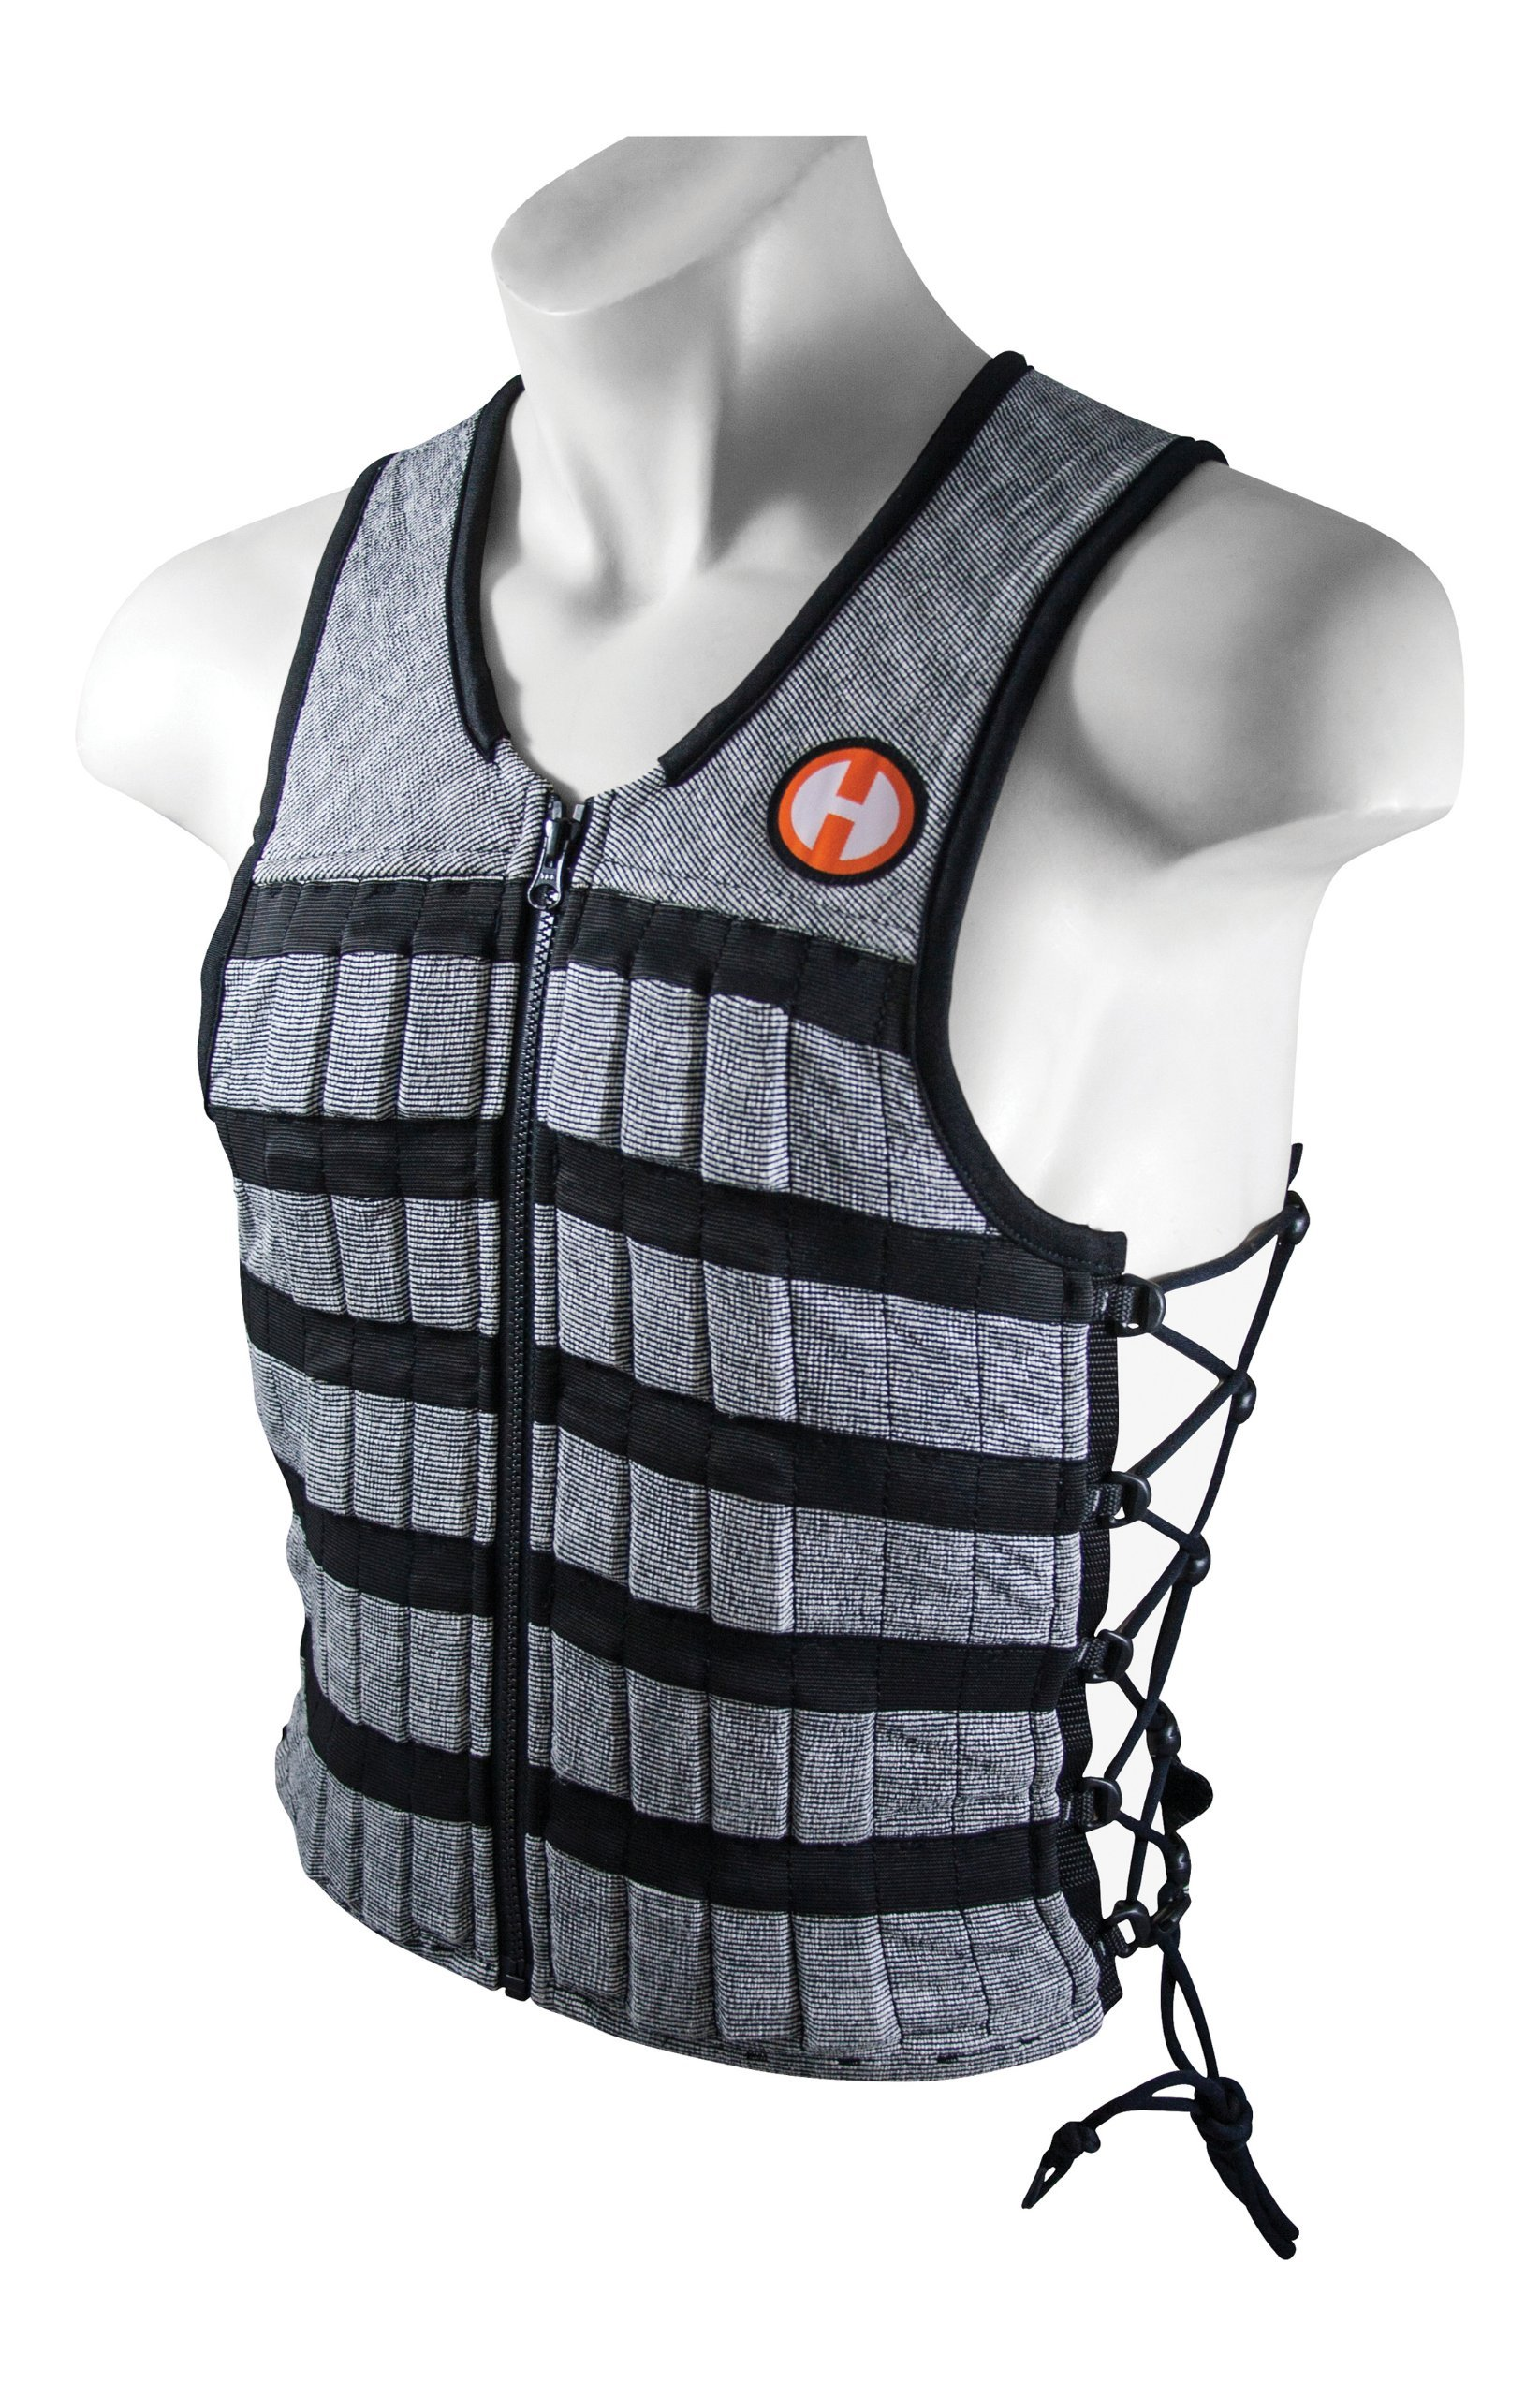 Hyperwear Hyper Vest PRO Adjustable Weight Vest Small, Comfortable Fabric, Unisex 10-Pound, Functional Fitness Training, Walking Weight Vest, Flexible Material, Side Laces for Custom Fit (Renewed)